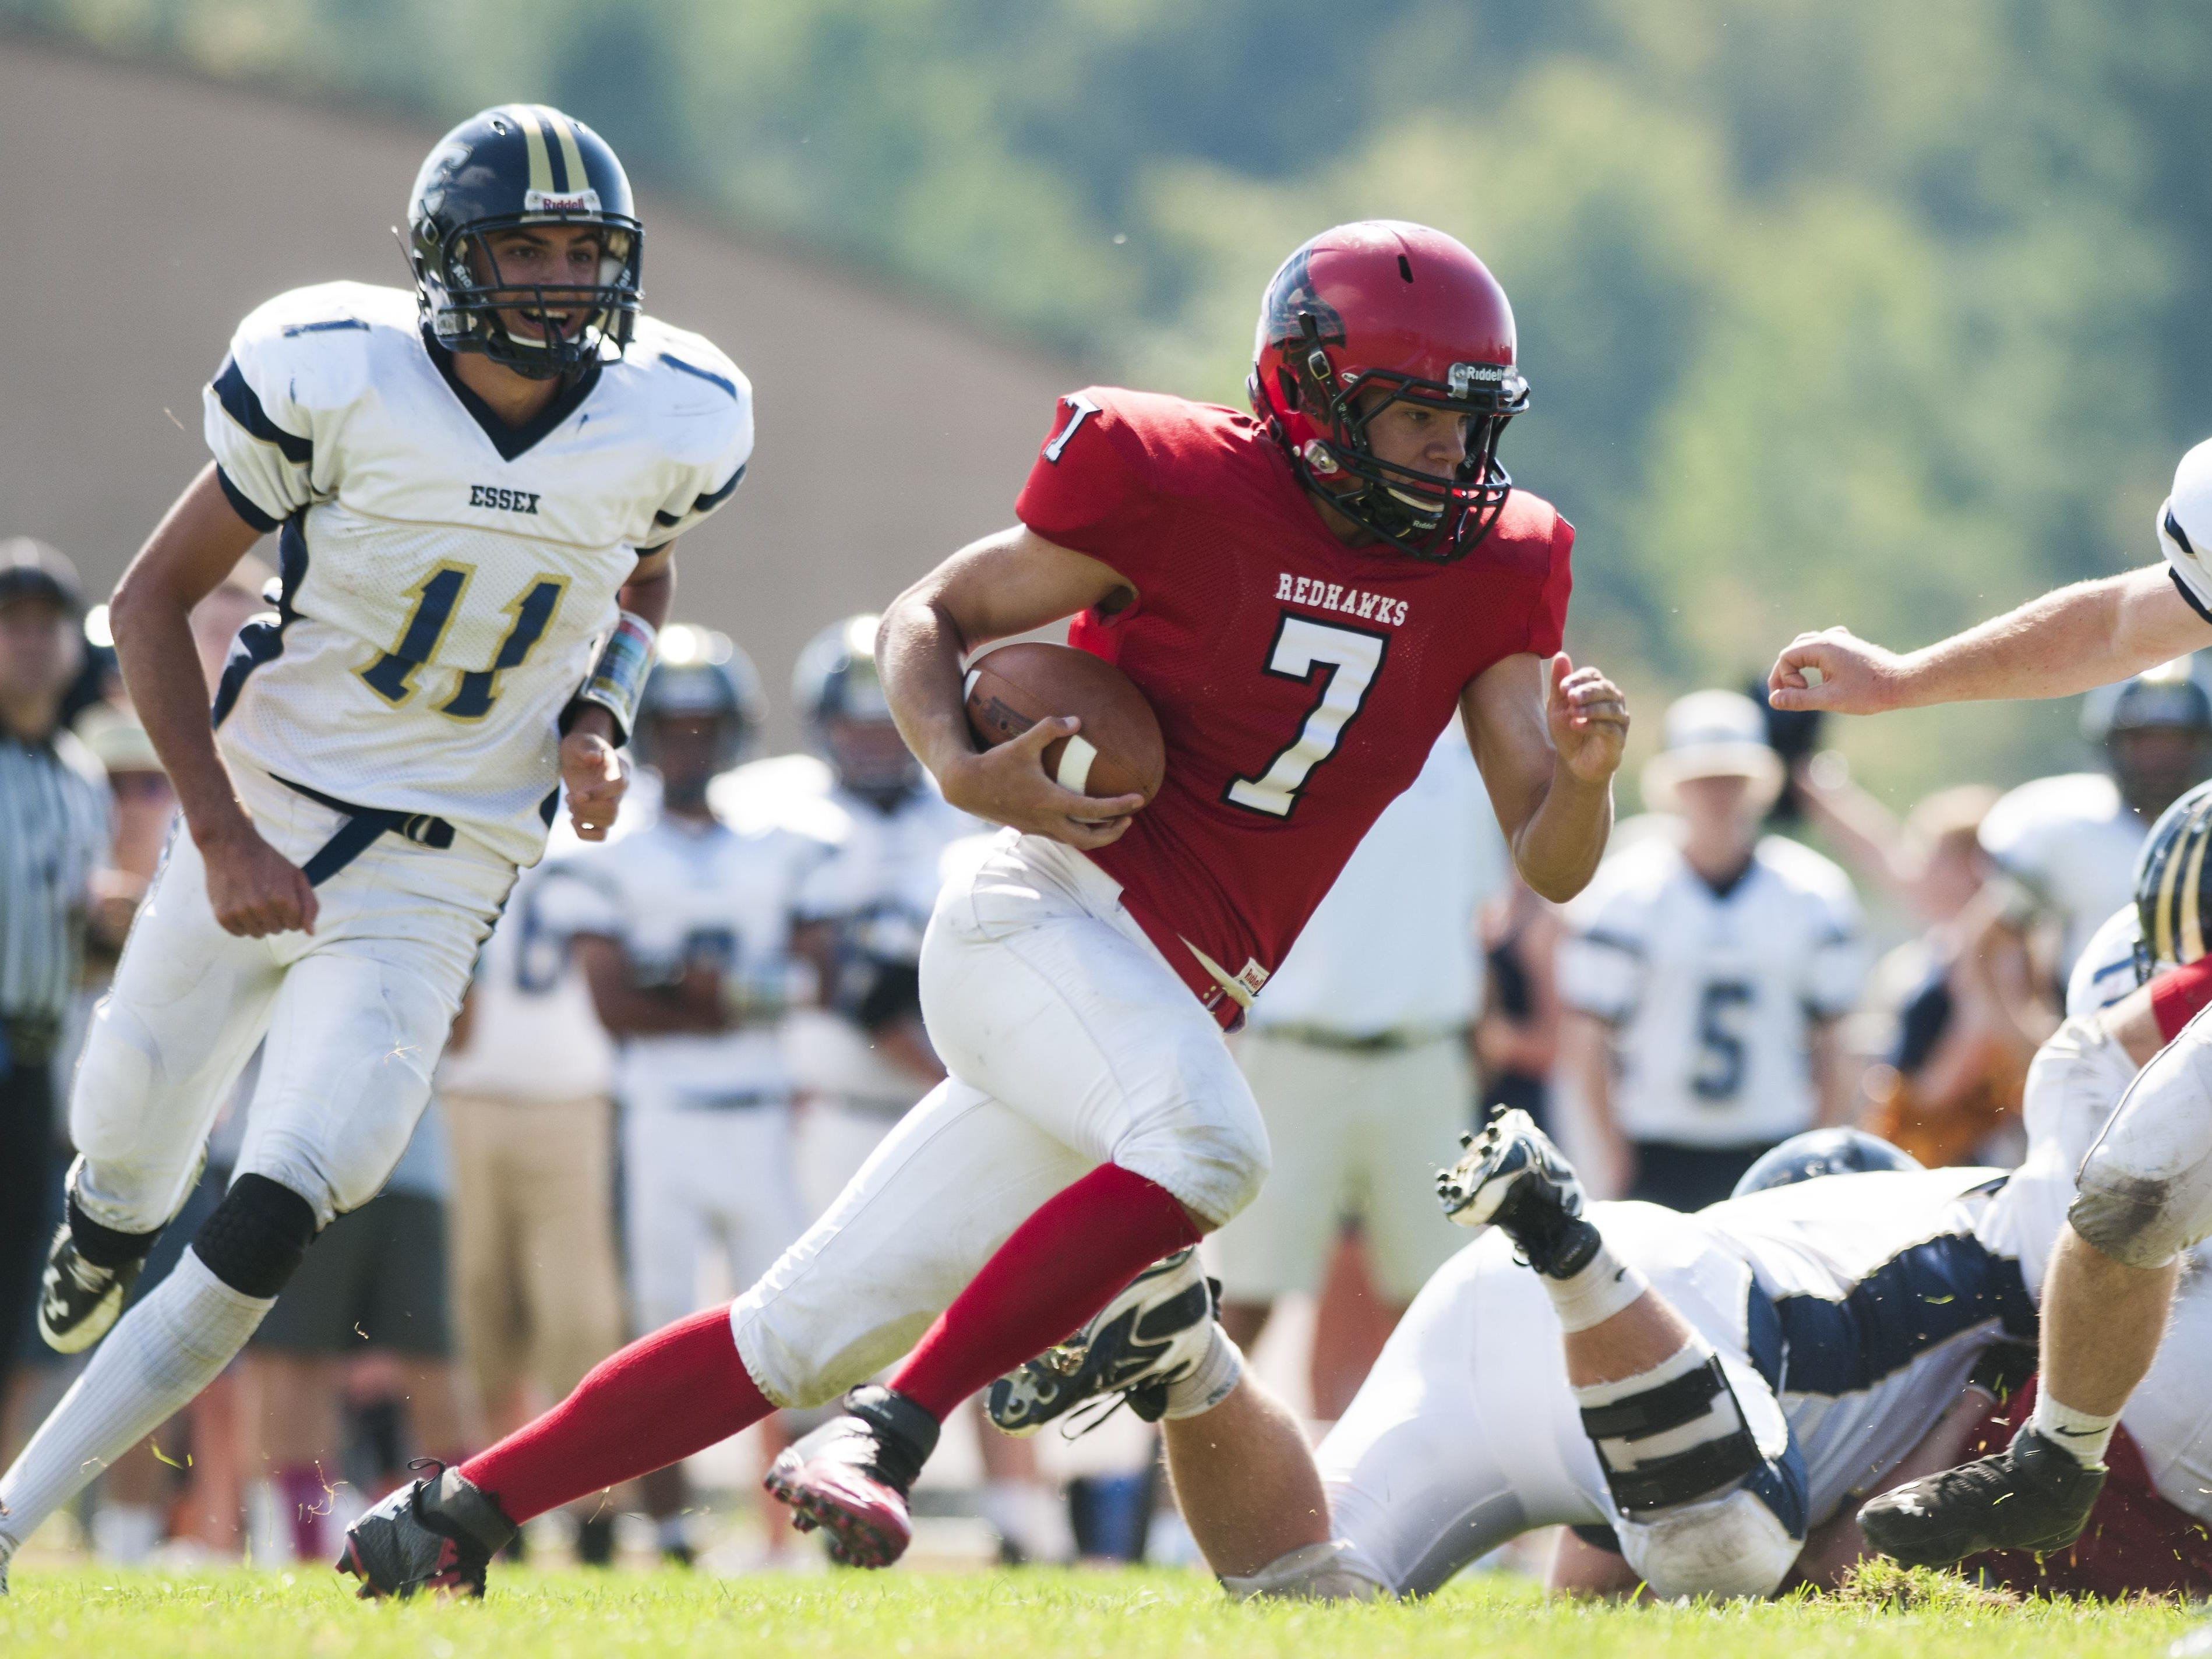 CVU quarterback Andrew Bortnick runs with the ball during a high school football against Essex in Hinesburg on Saturday.